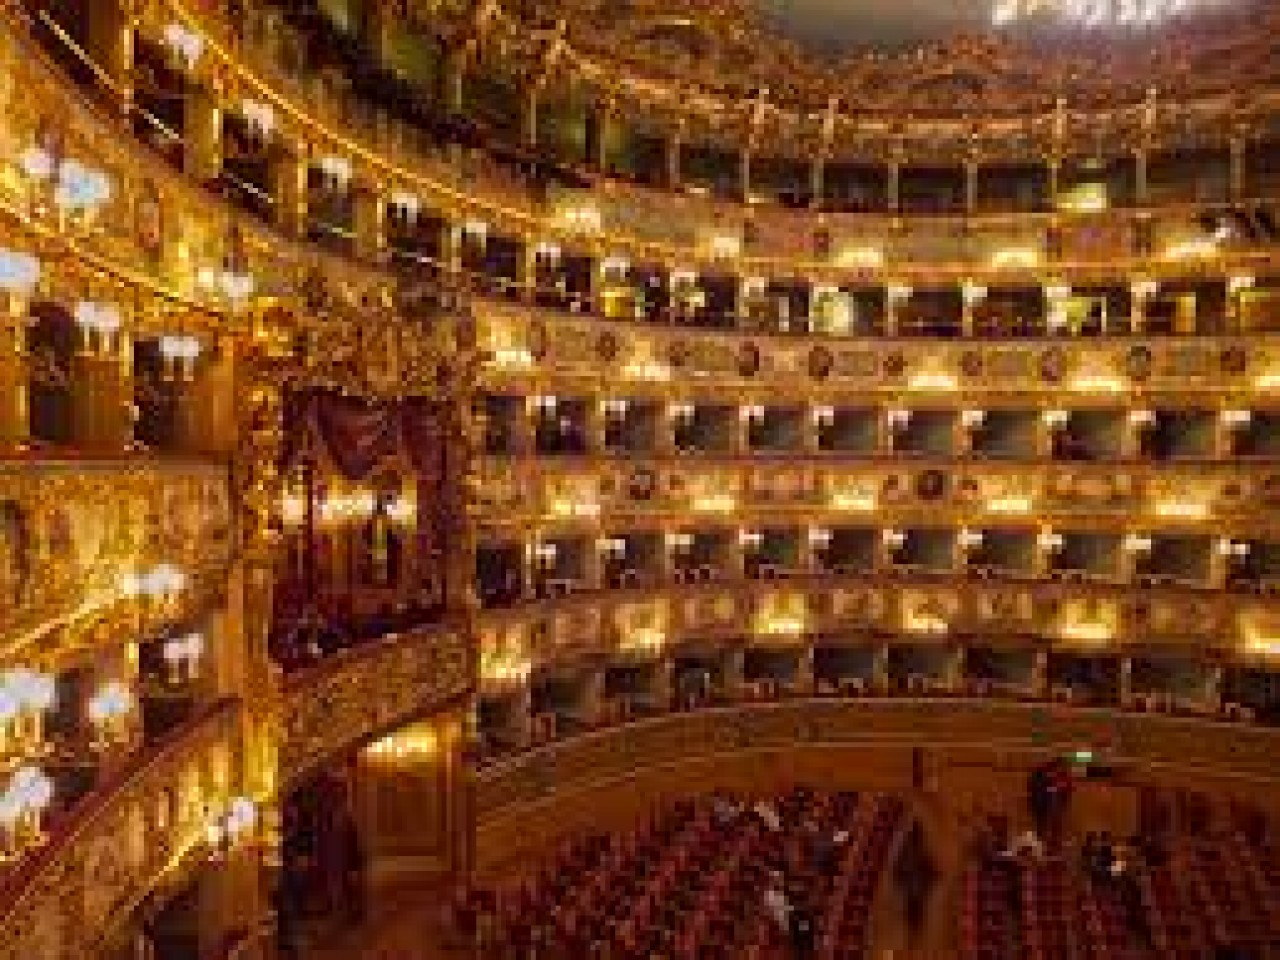 Concerts in Venice